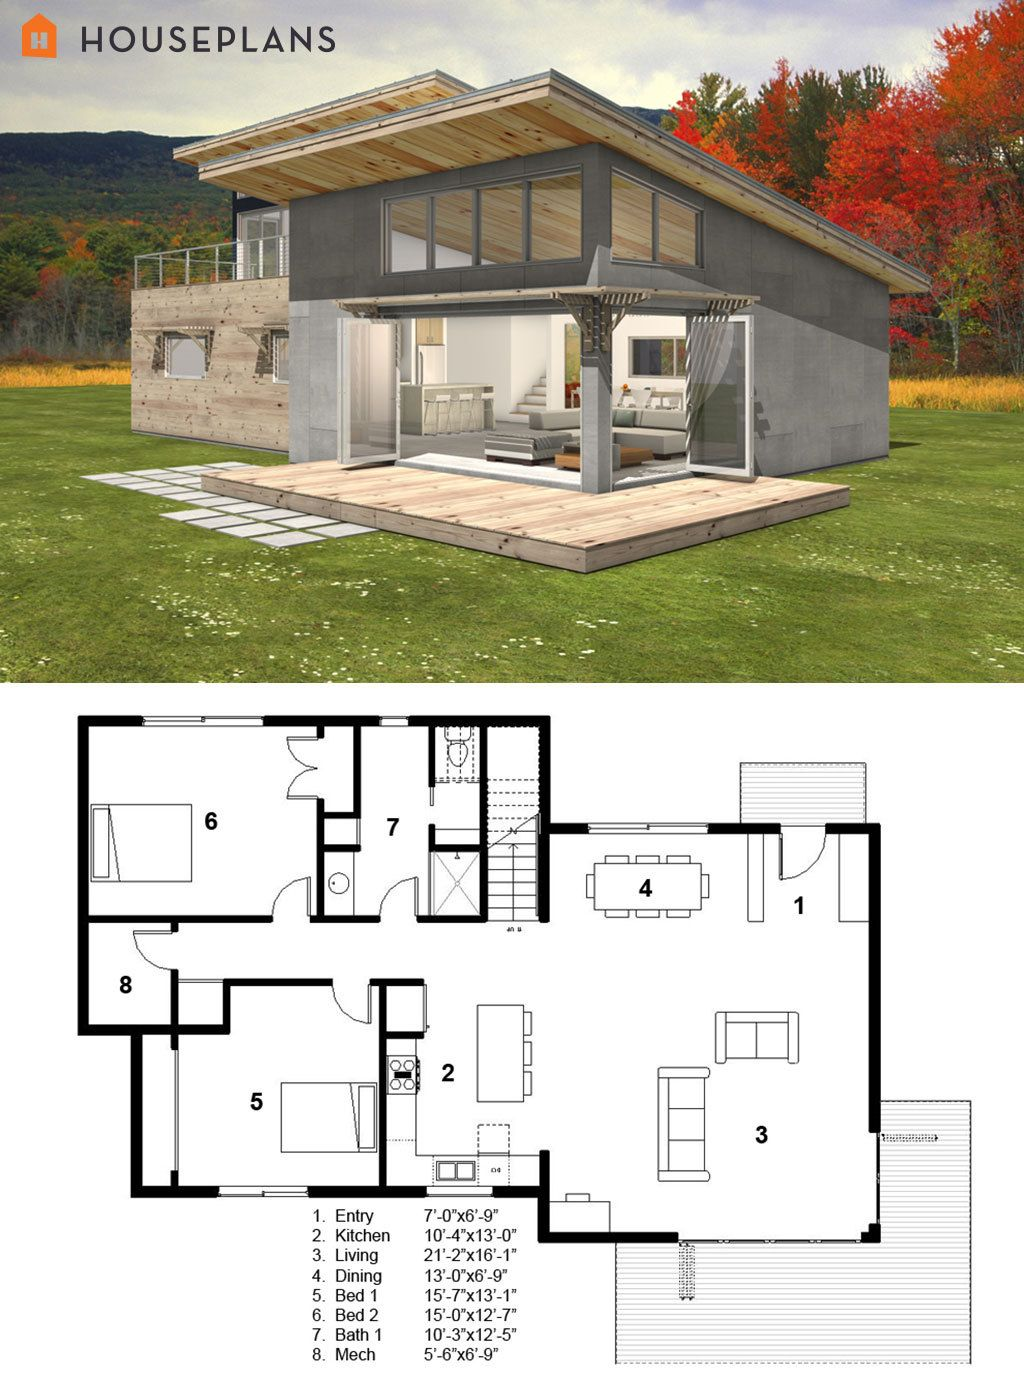 Small modern cabin house plan by freegreen energy for Energy saving house plans